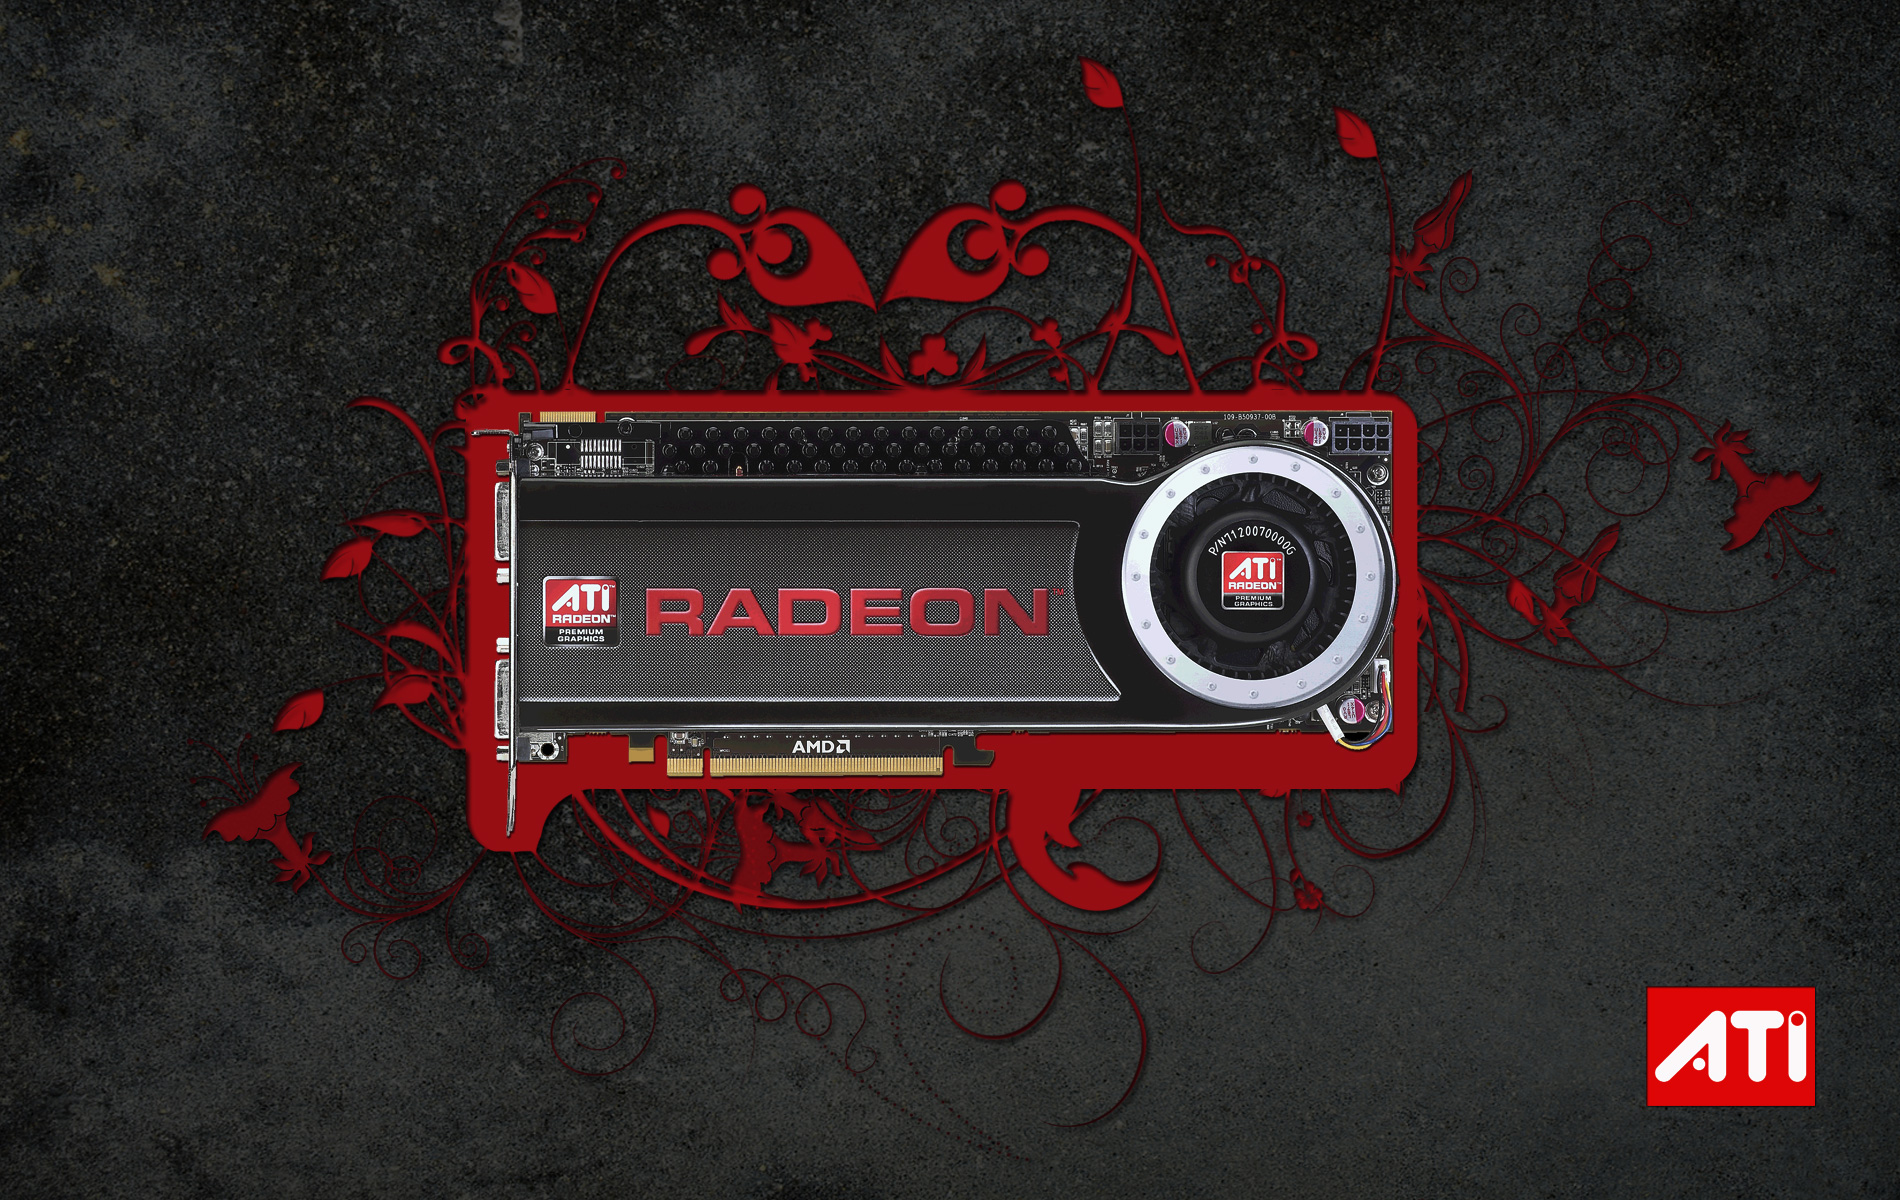 Ati Radeon Wallpapers - LyhyXX.com